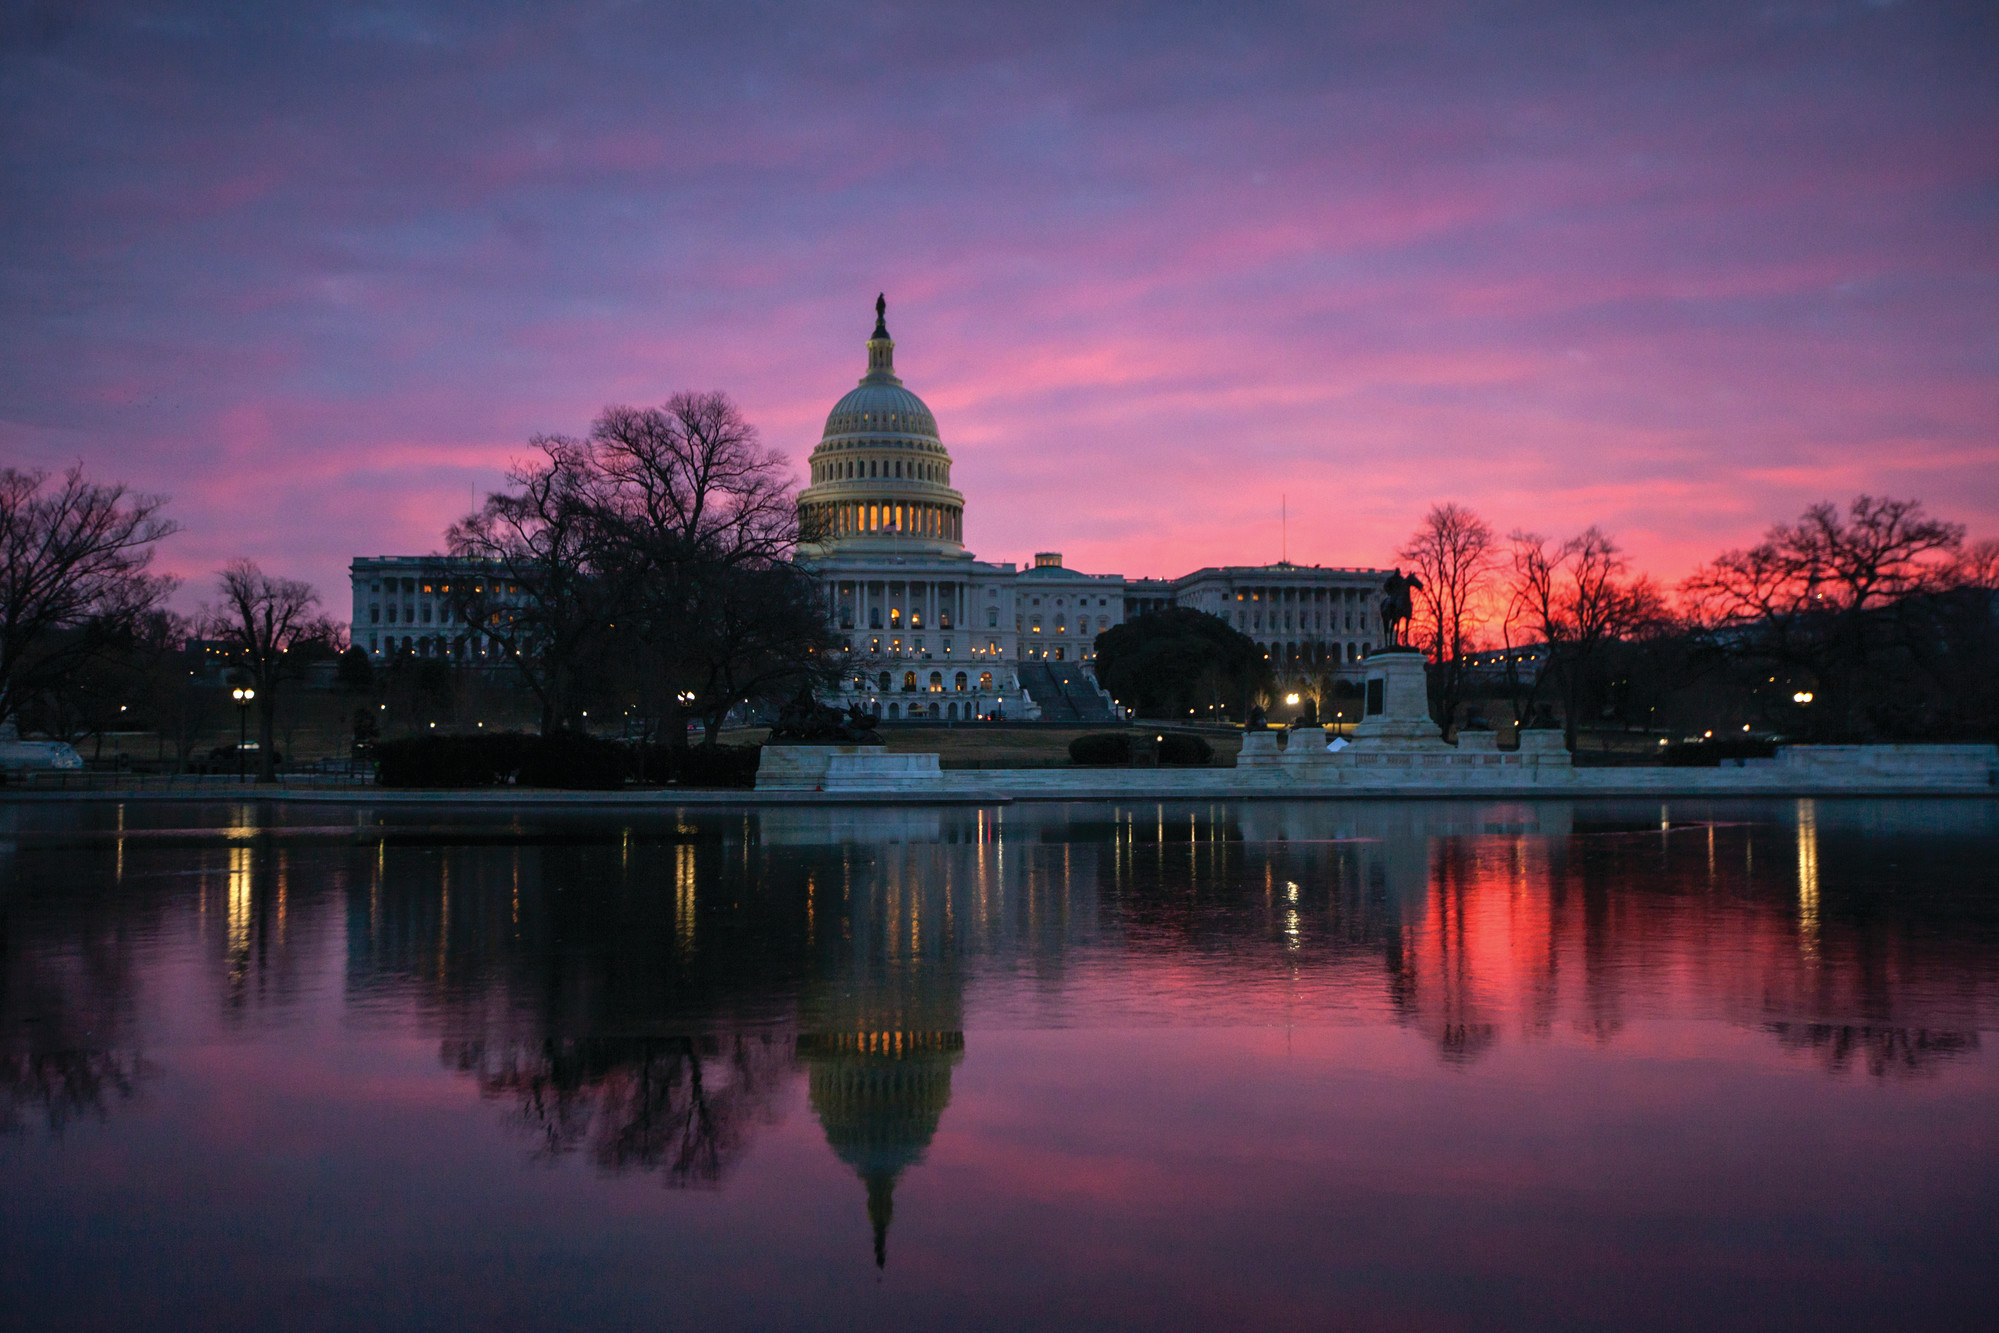 Dawn breaks over the Capitol in Washington on Feb. 6. The once-bipartisan drive to curb increases in health care premiums has devolved into a partisan struggle with escalating demands by each side.